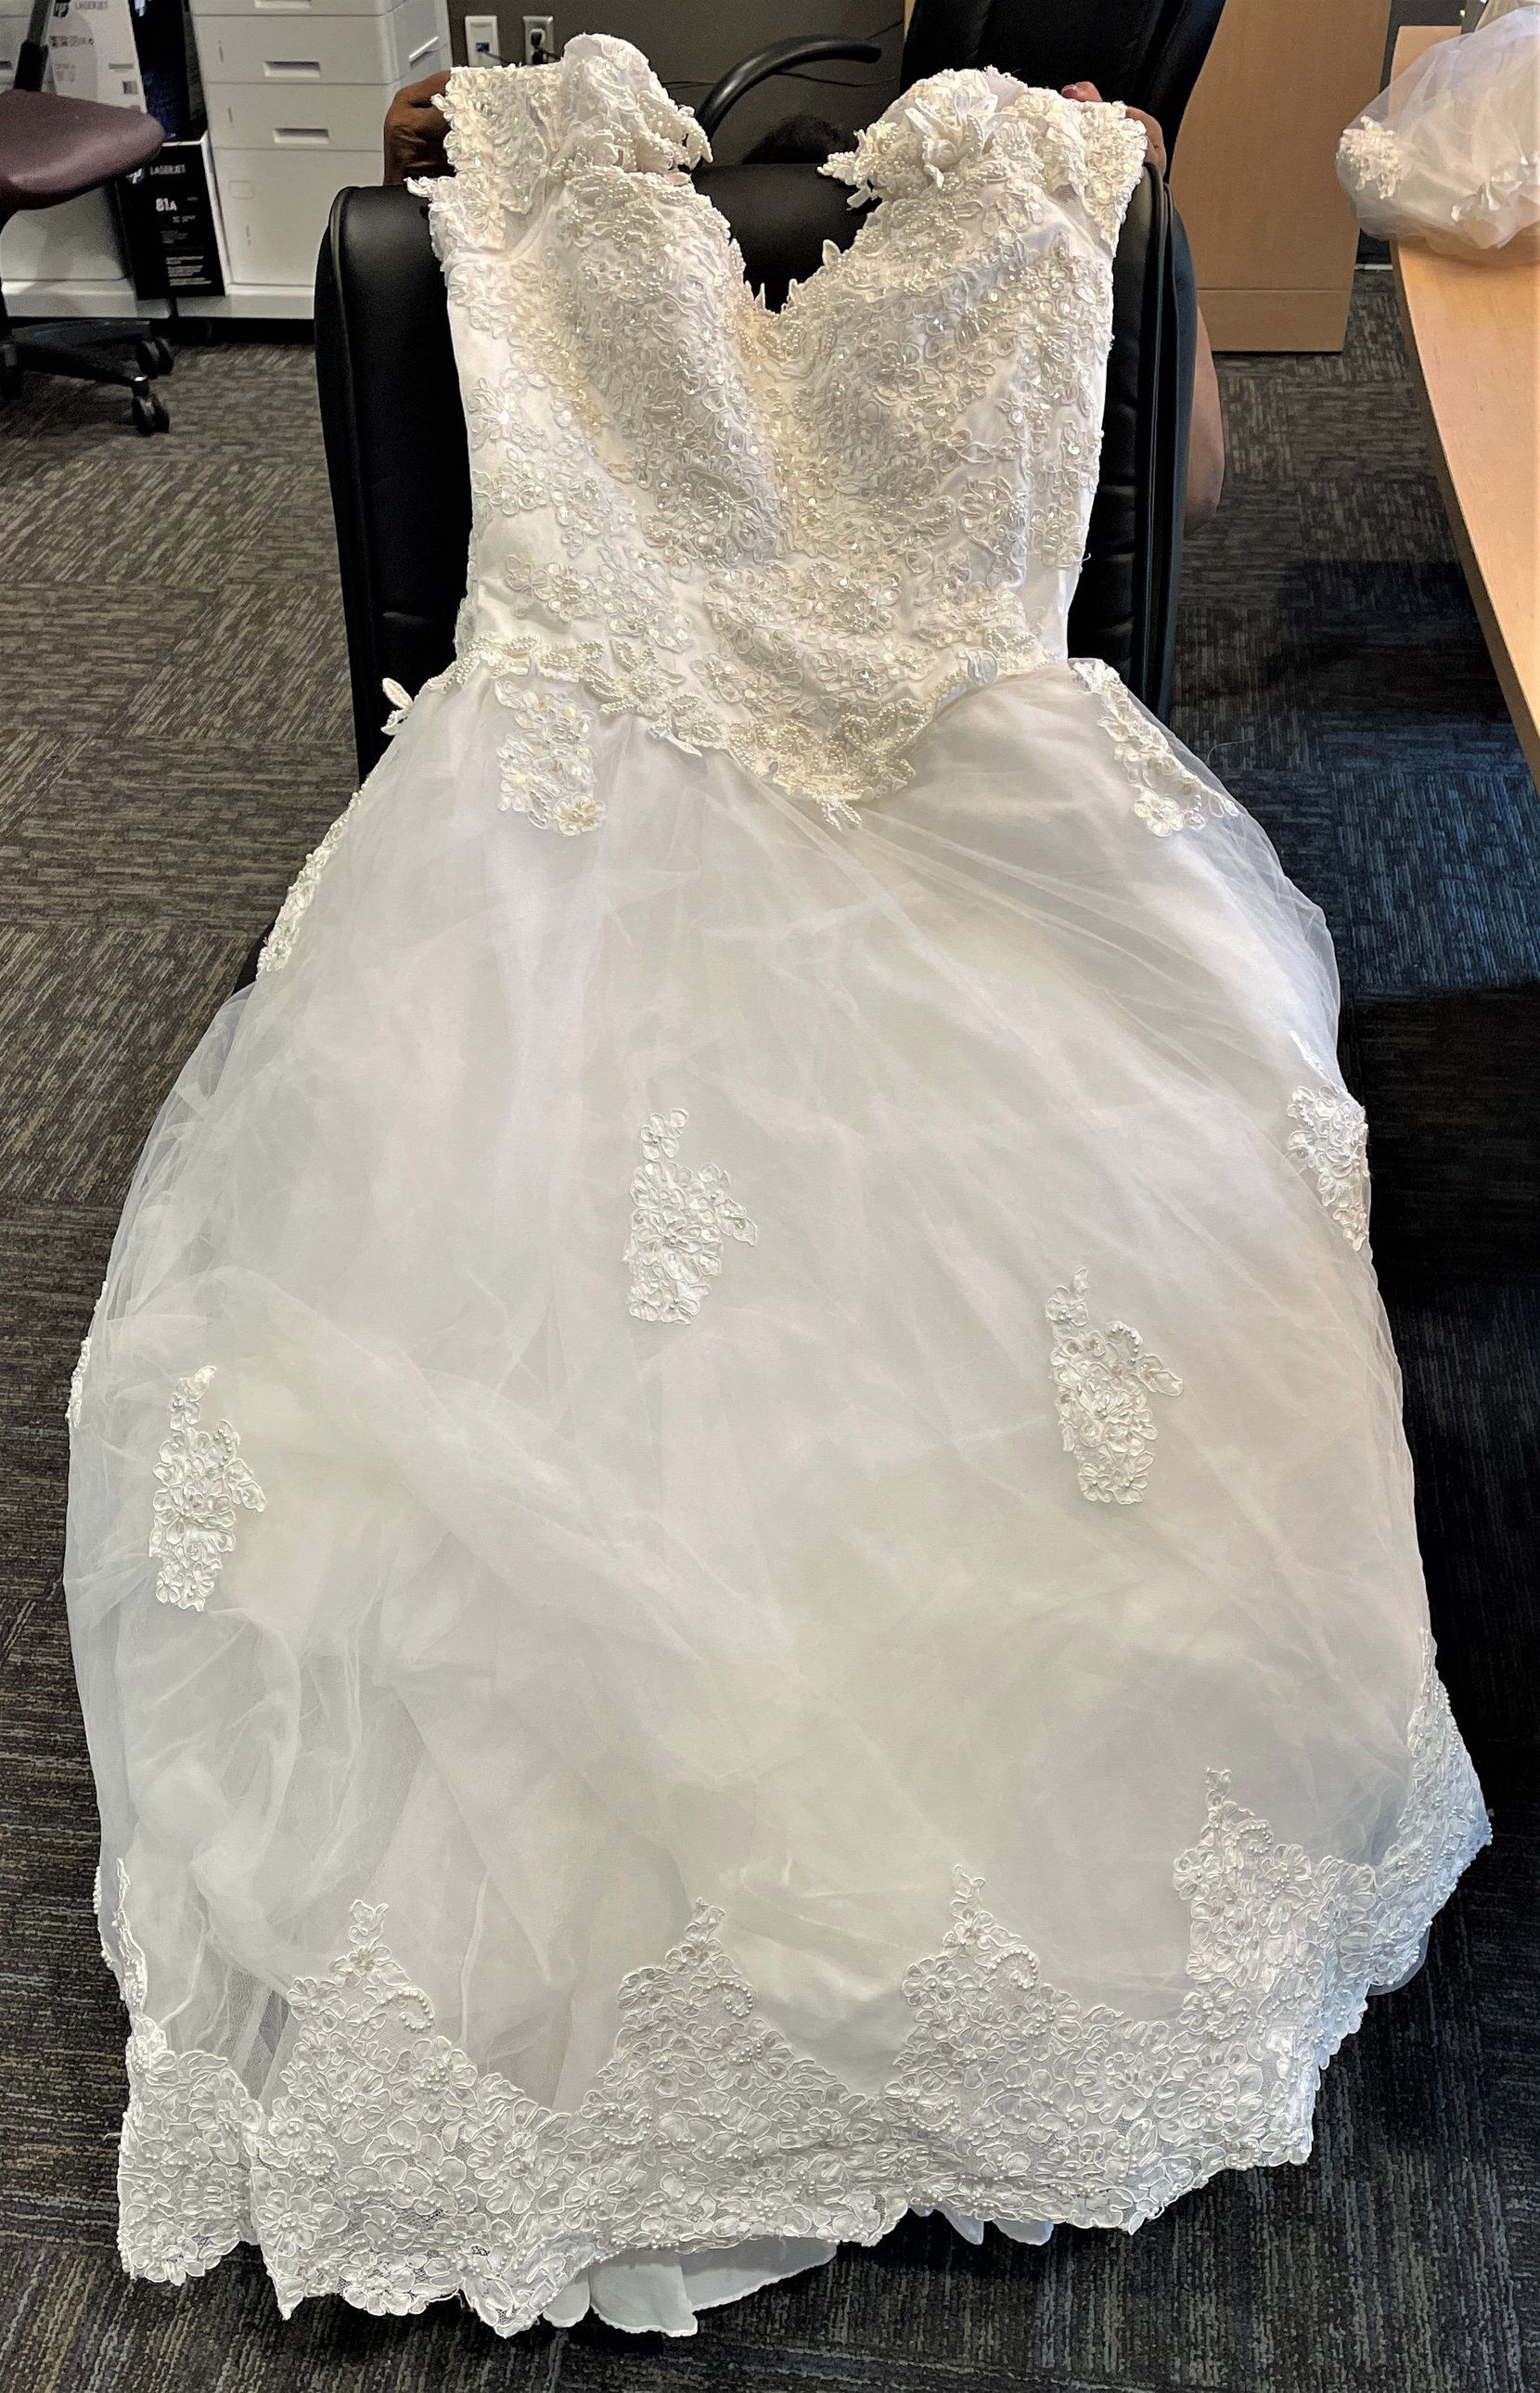 The North Texas Tollway Authority is trying to find the owner of this wedding dress, which an NTTA crew found in a box near the Dallas North Tollway and Gaylord Parkway in Frisco on Friday, July 23, 2021.